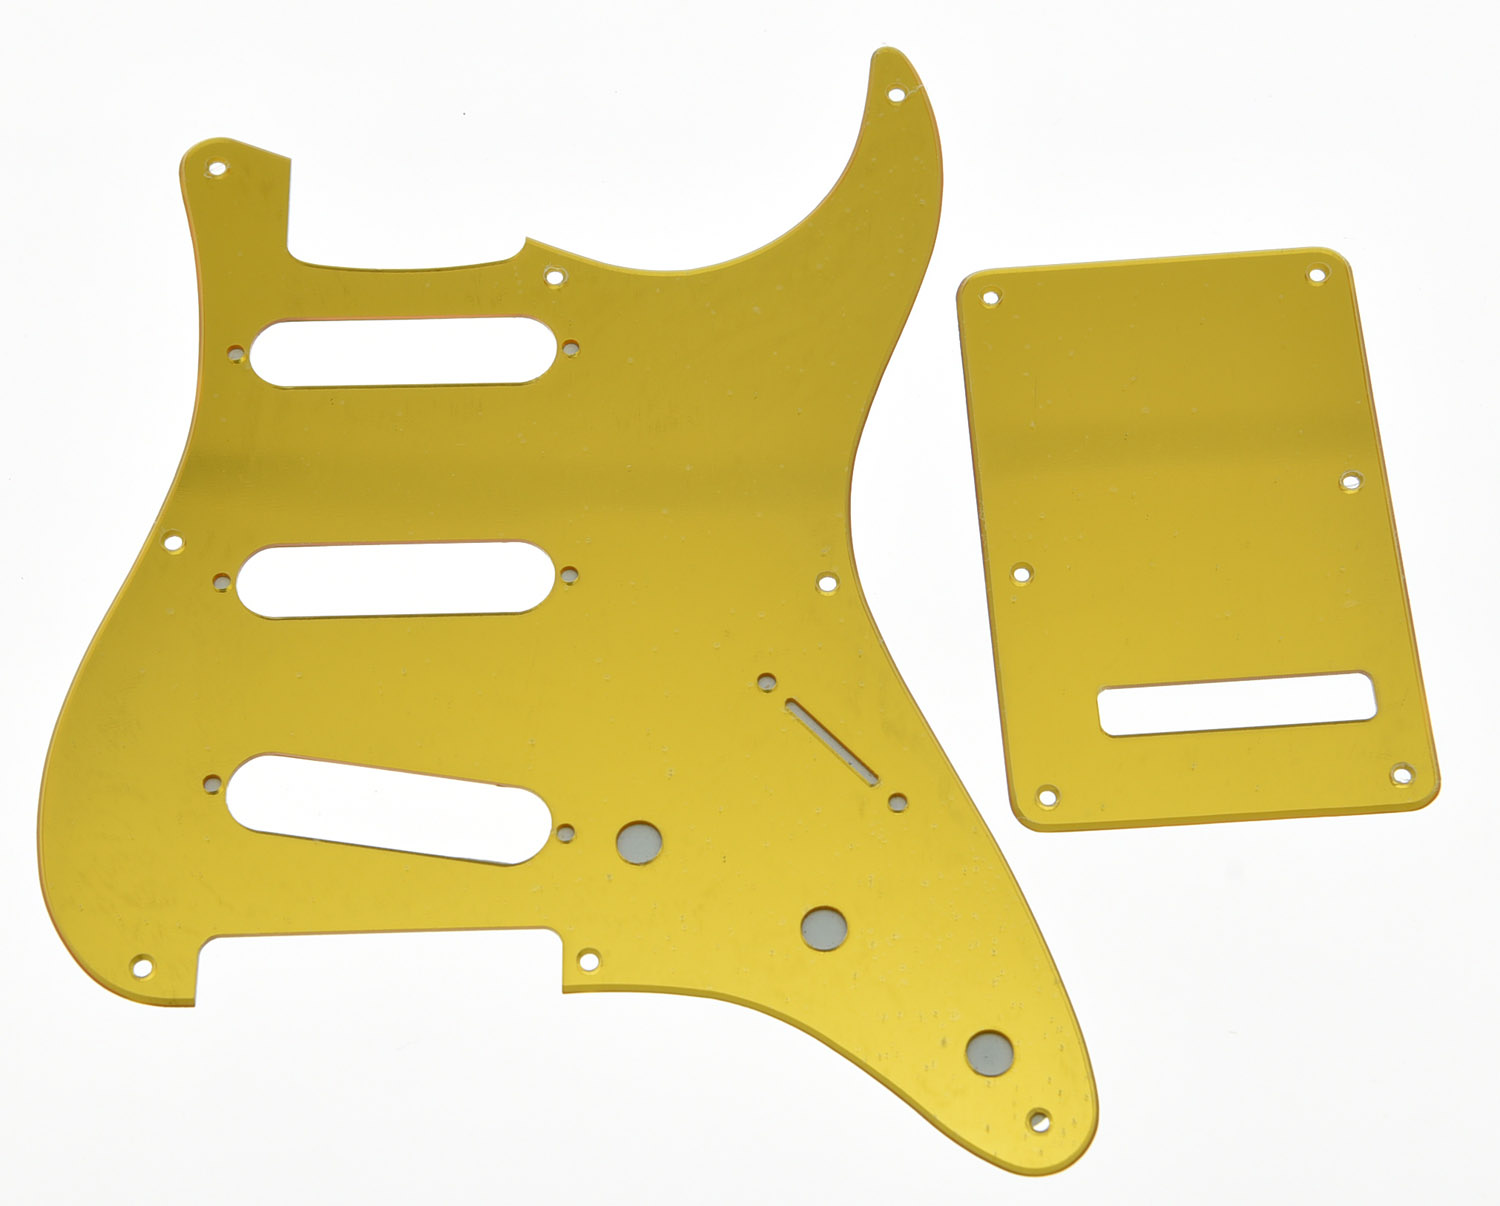 KAISH Gold Mirror Vintage 8 Hole Guitar Pickguard Trem Cover fits USA ST musiclily 3ply pvc outline pickguard for fenderstrat st guitar custom